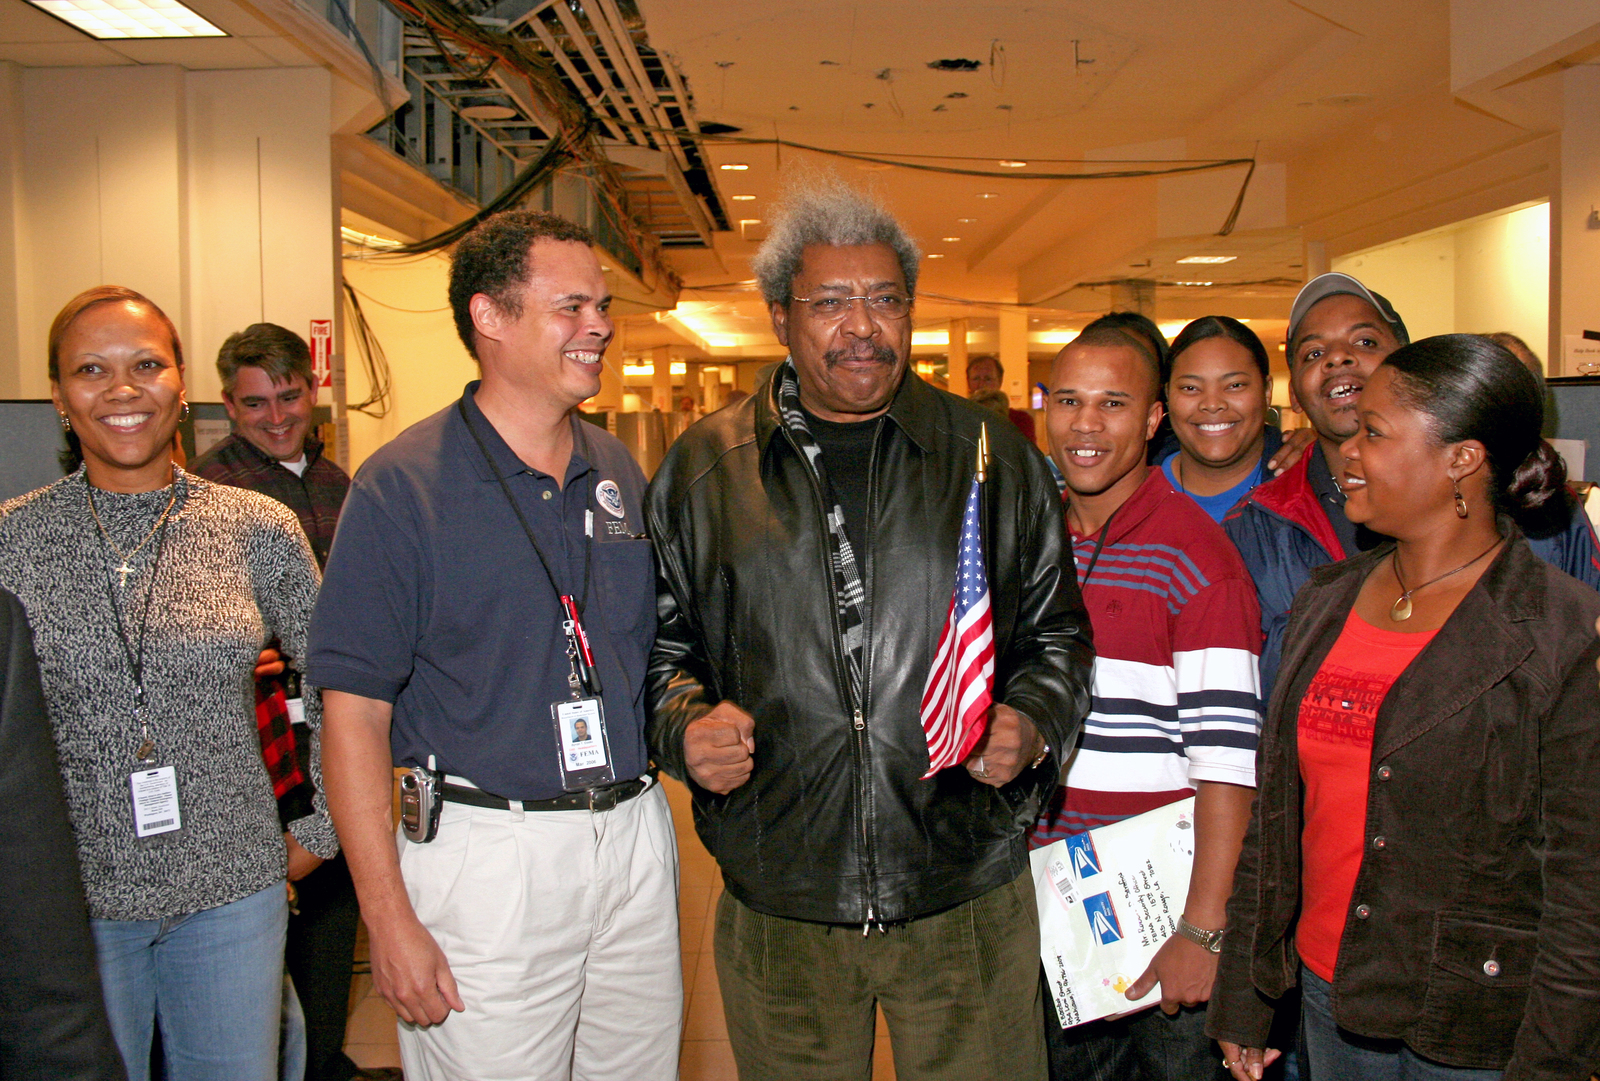 [Hurricane Katrina/Hurricane Rita] Baton Rouge, LA  November 17, 2005 - Boxing promoter Don King makes a surprise visit to FEMA's Louisiana Joint Field Office to rally the spirits of relief workers who have been working to assist Louisianans hurt by hurricanes Katrina and Rita.  His rhyming phrases of encouragment provided a much-needed break.  Photo by Greg Henshall / FEMA